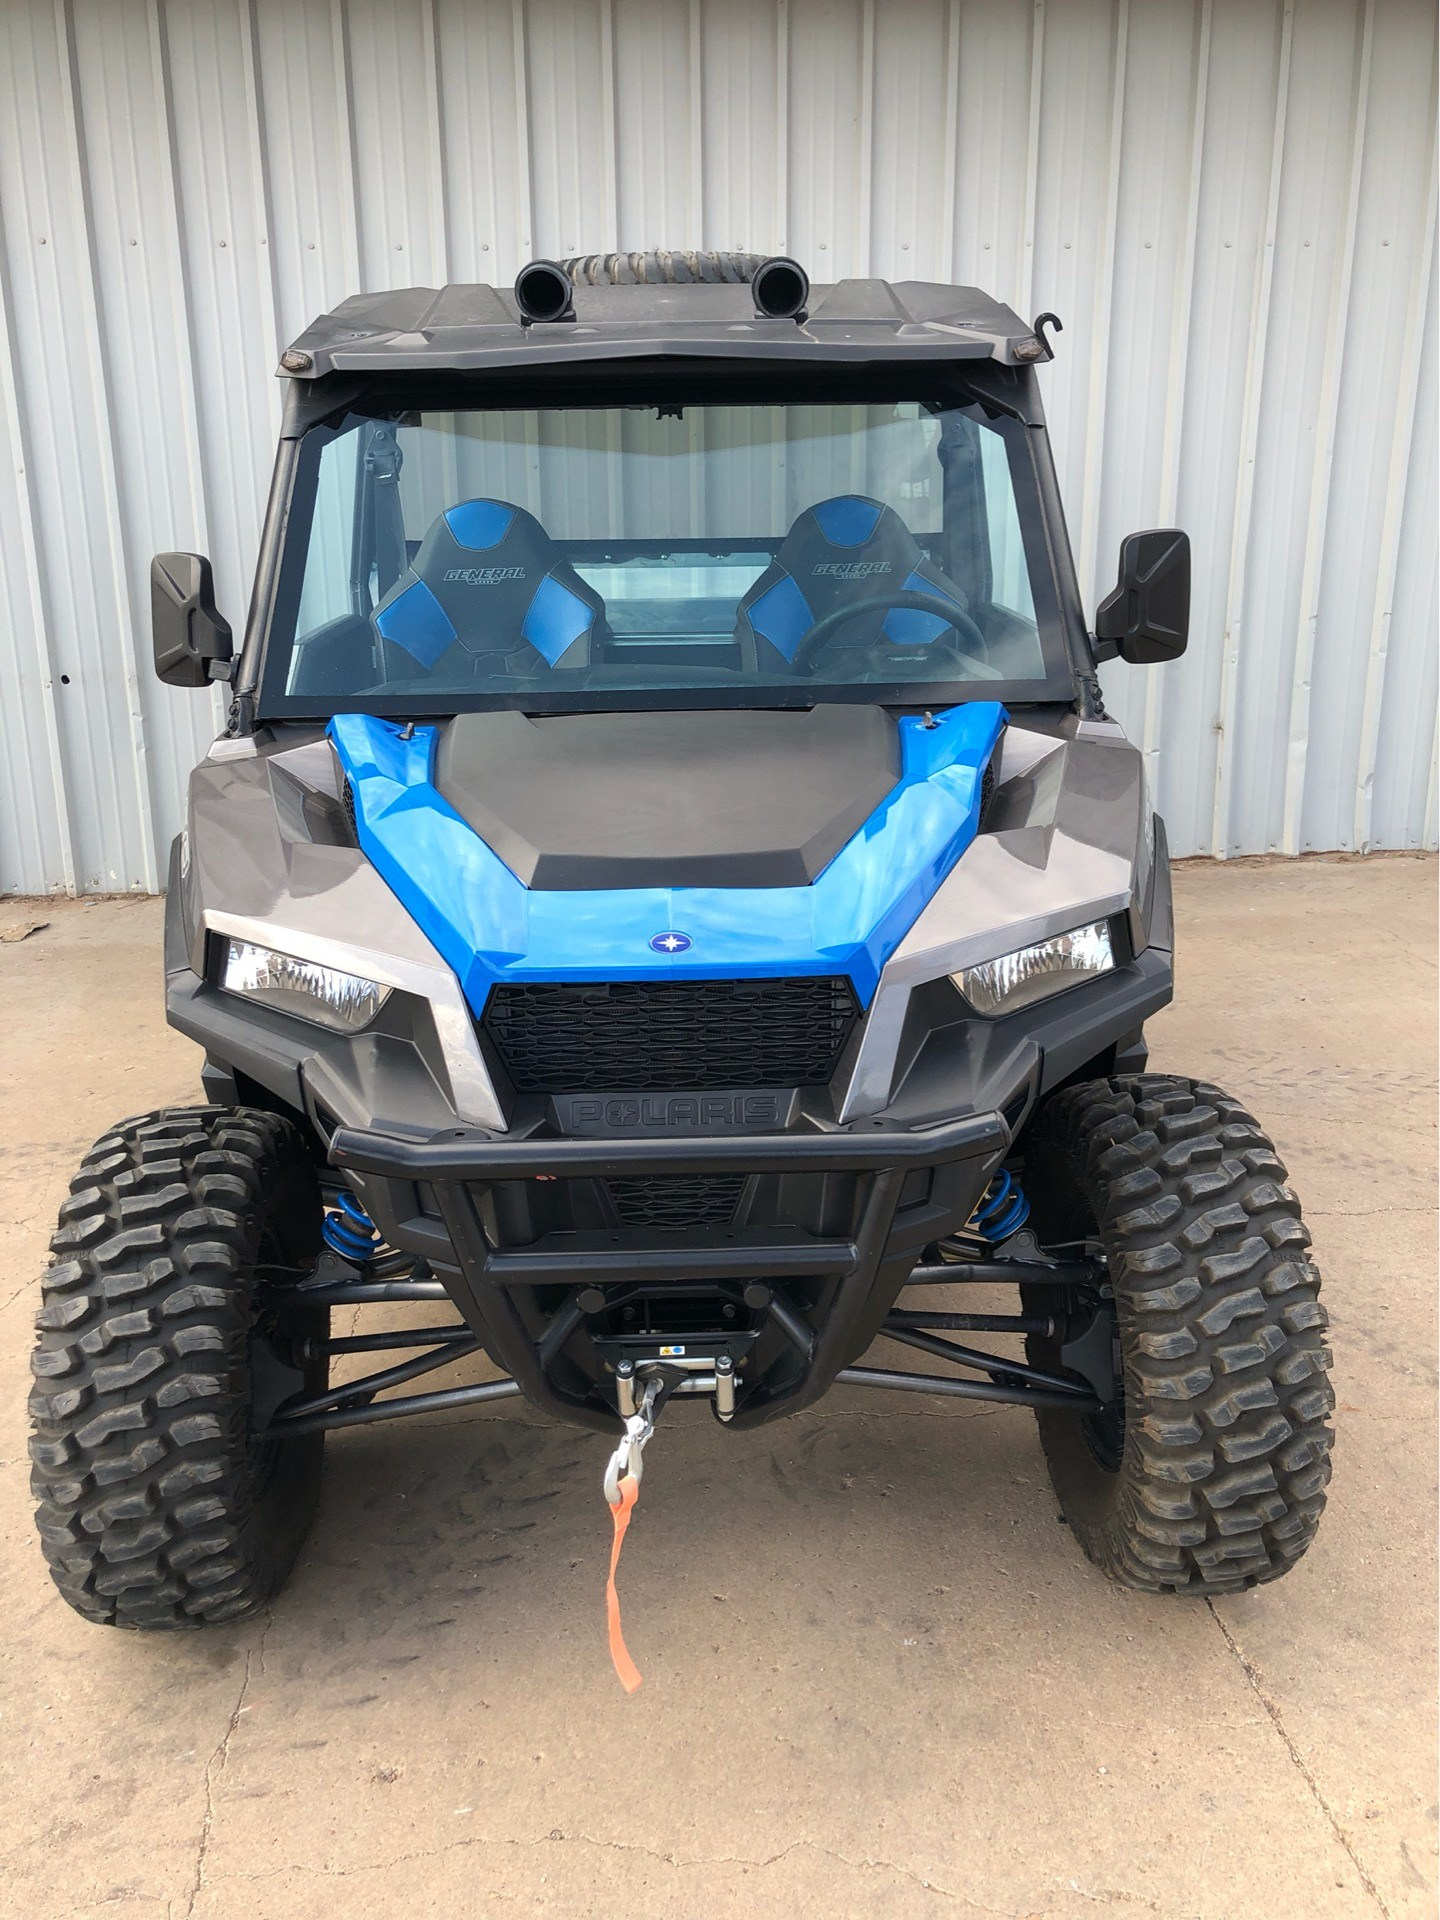 2019 Polaris General 1000 EPS Deluxe in Amarillo, Texas - Photo 3